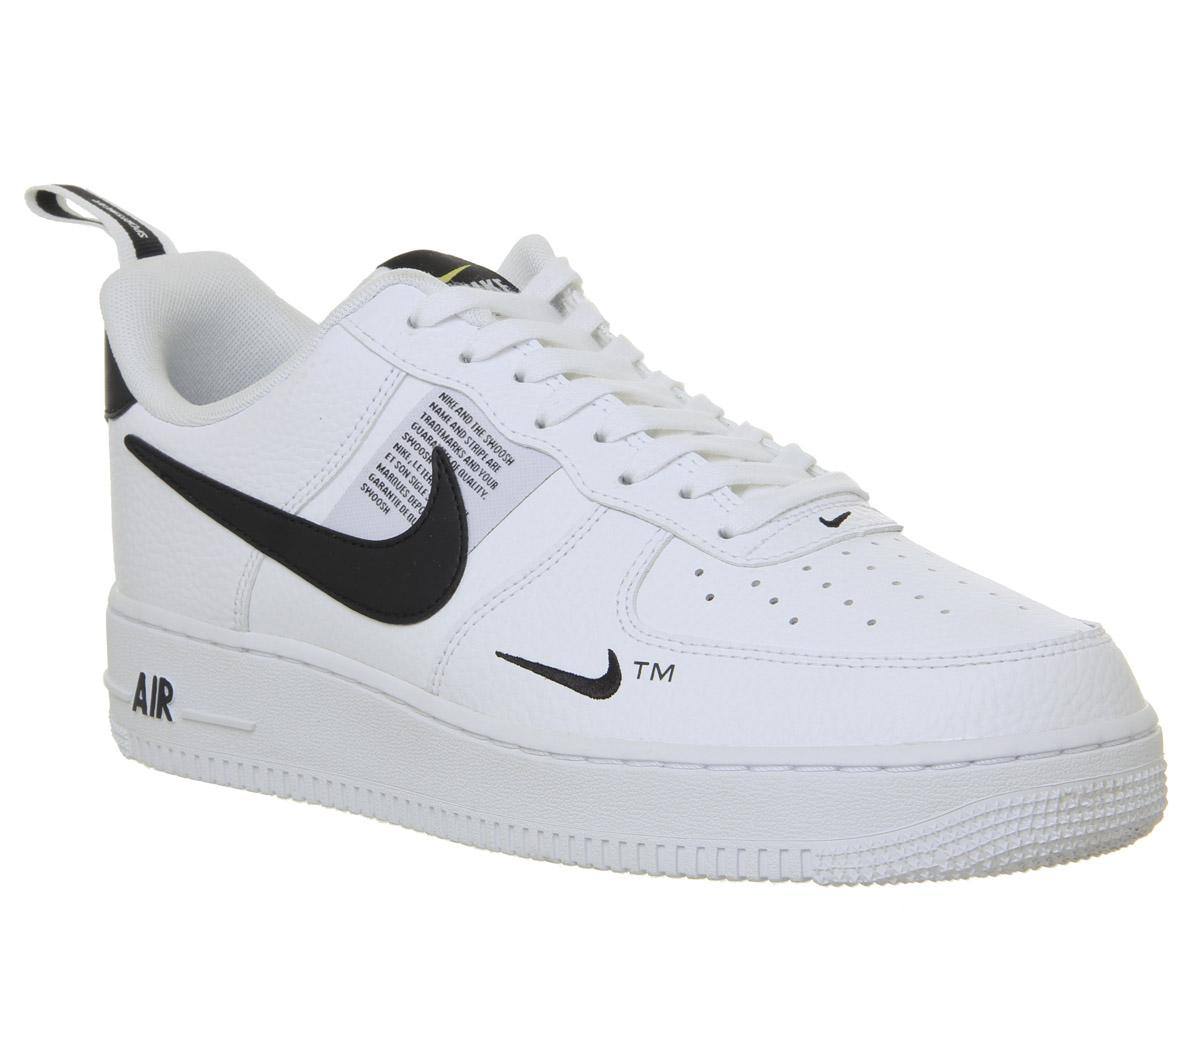 Air Force 1 Utility Trainers